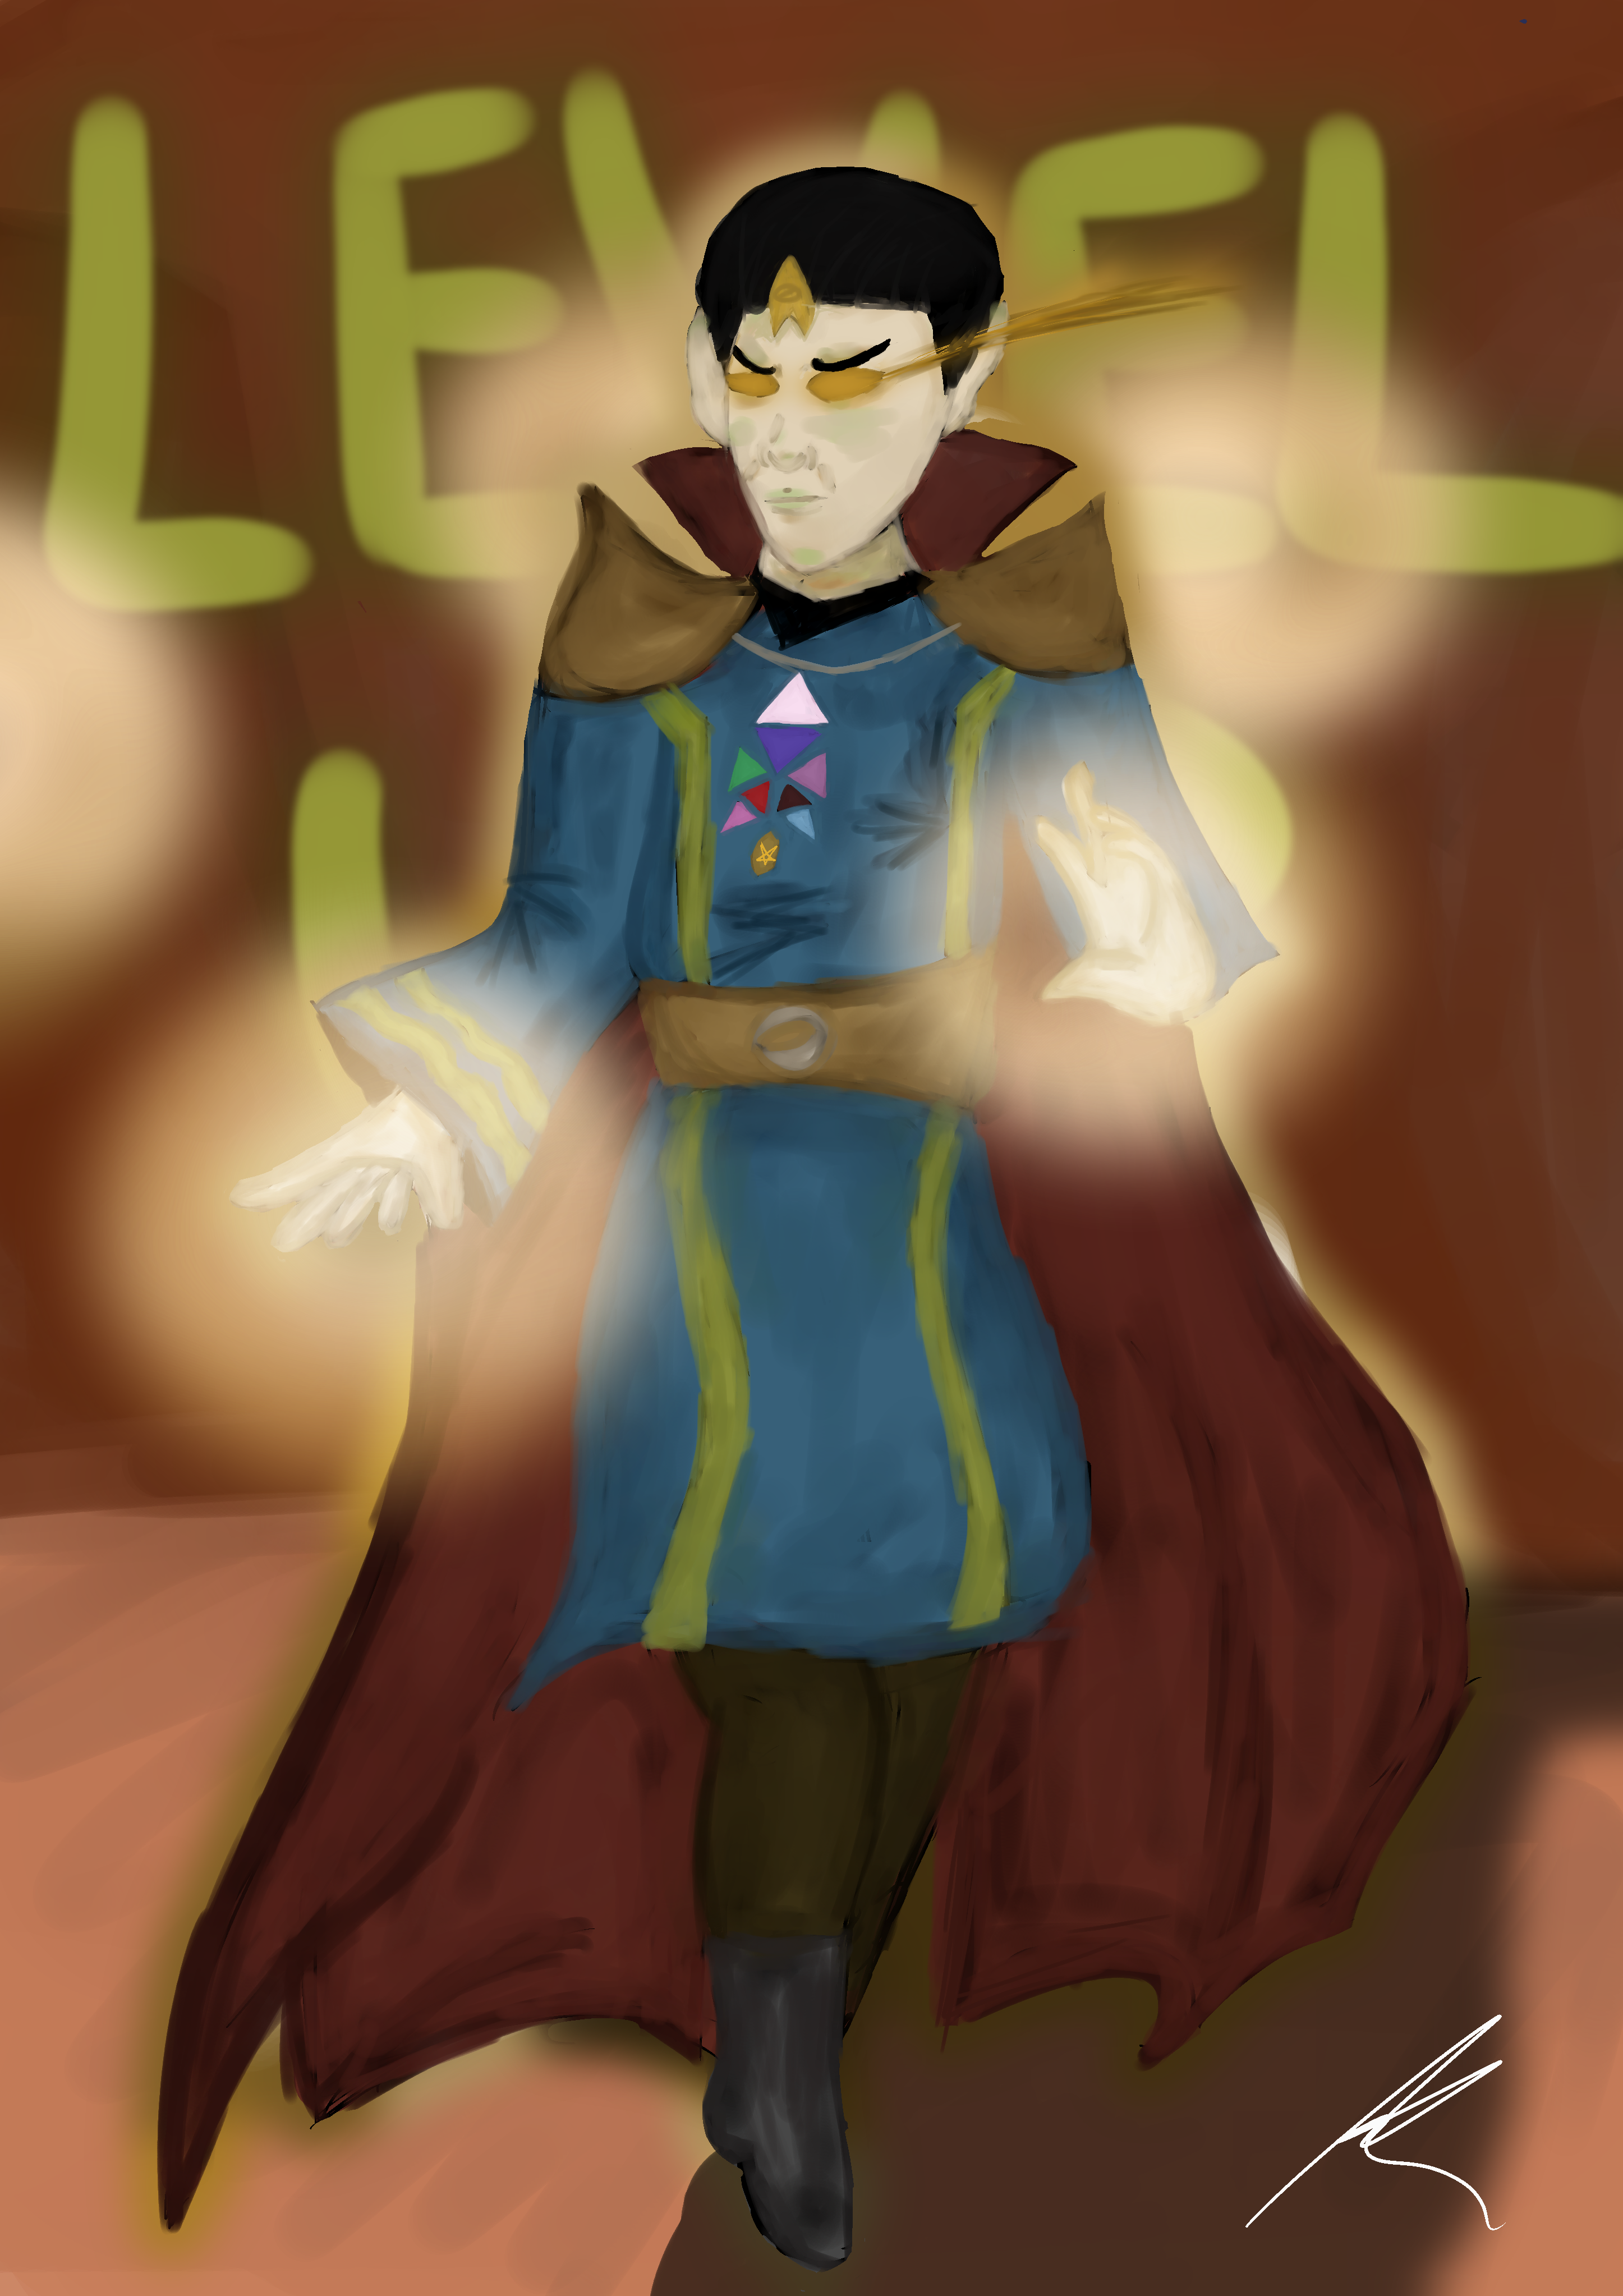 The logical wizard